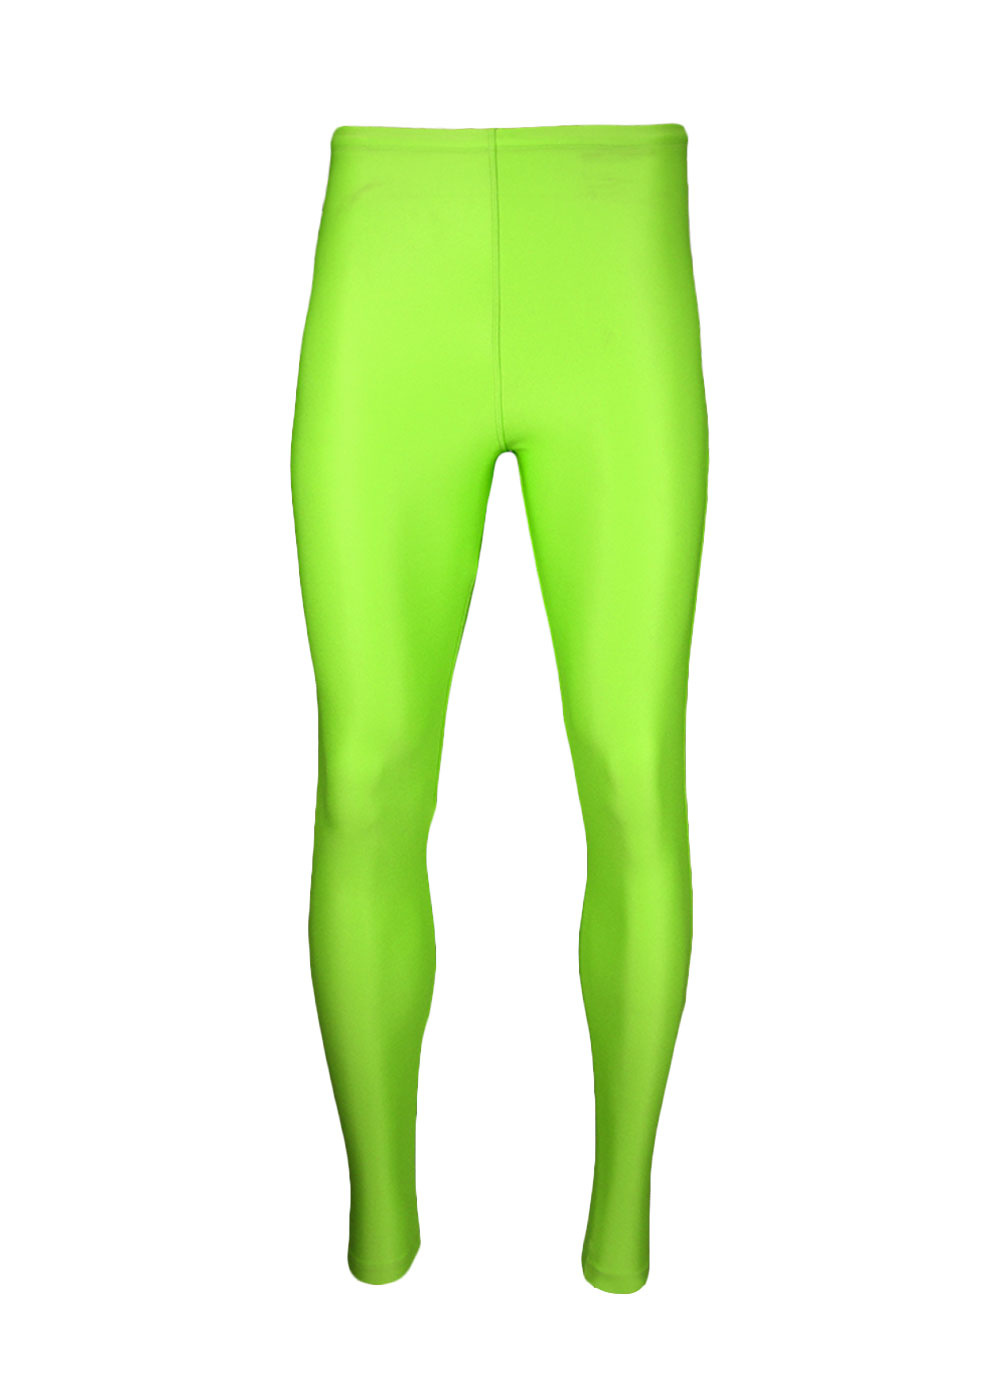 Drywick Tights : Lime